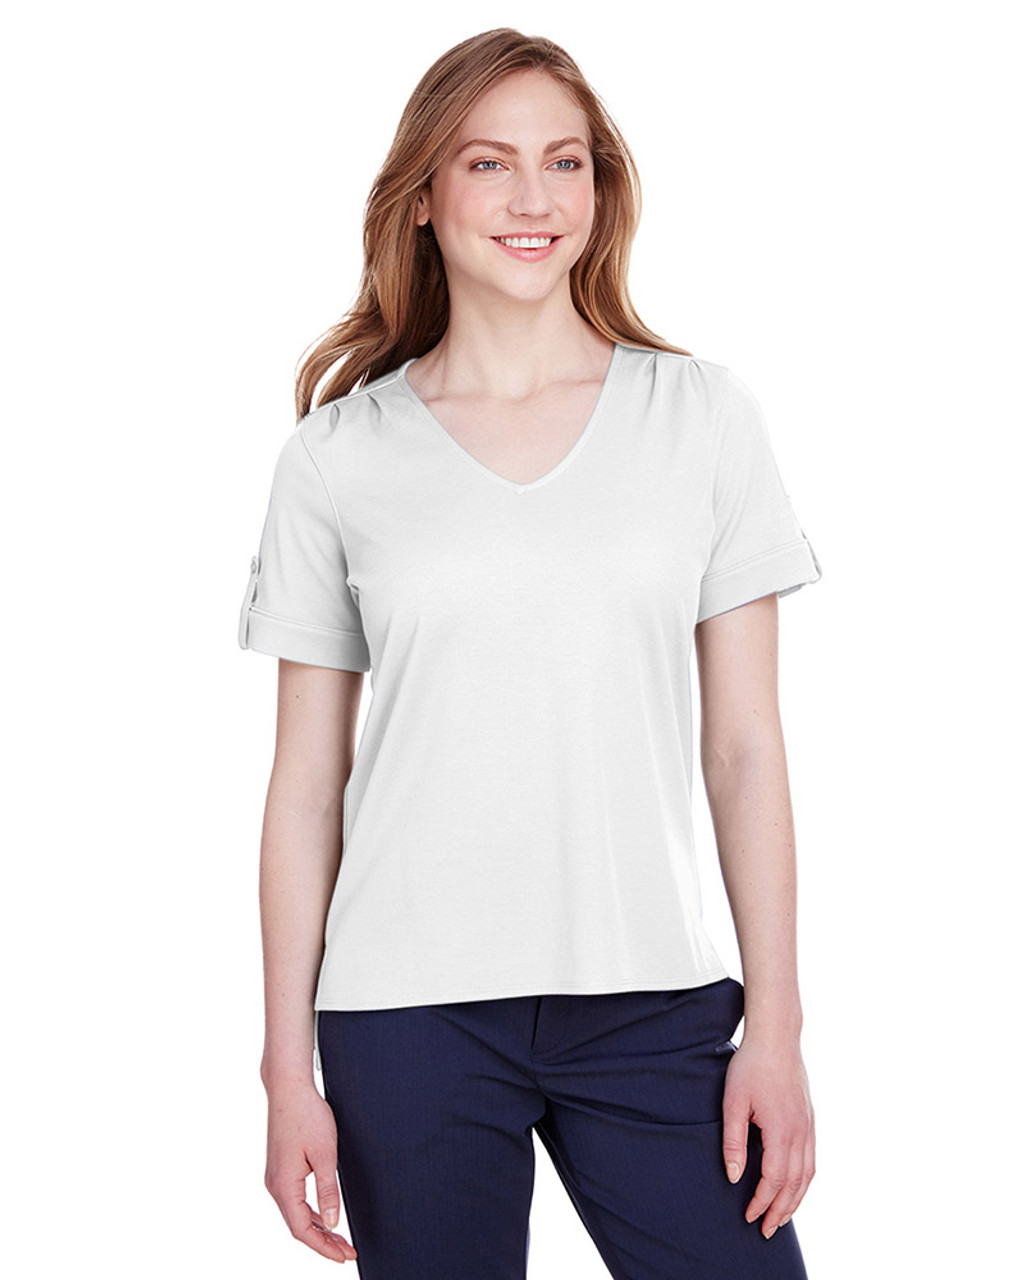 White - DG20WB Devon & Jones Ladies' CrownLux Performance™ Plaited Rolled-Sleeve Top | Blankclothing.ca